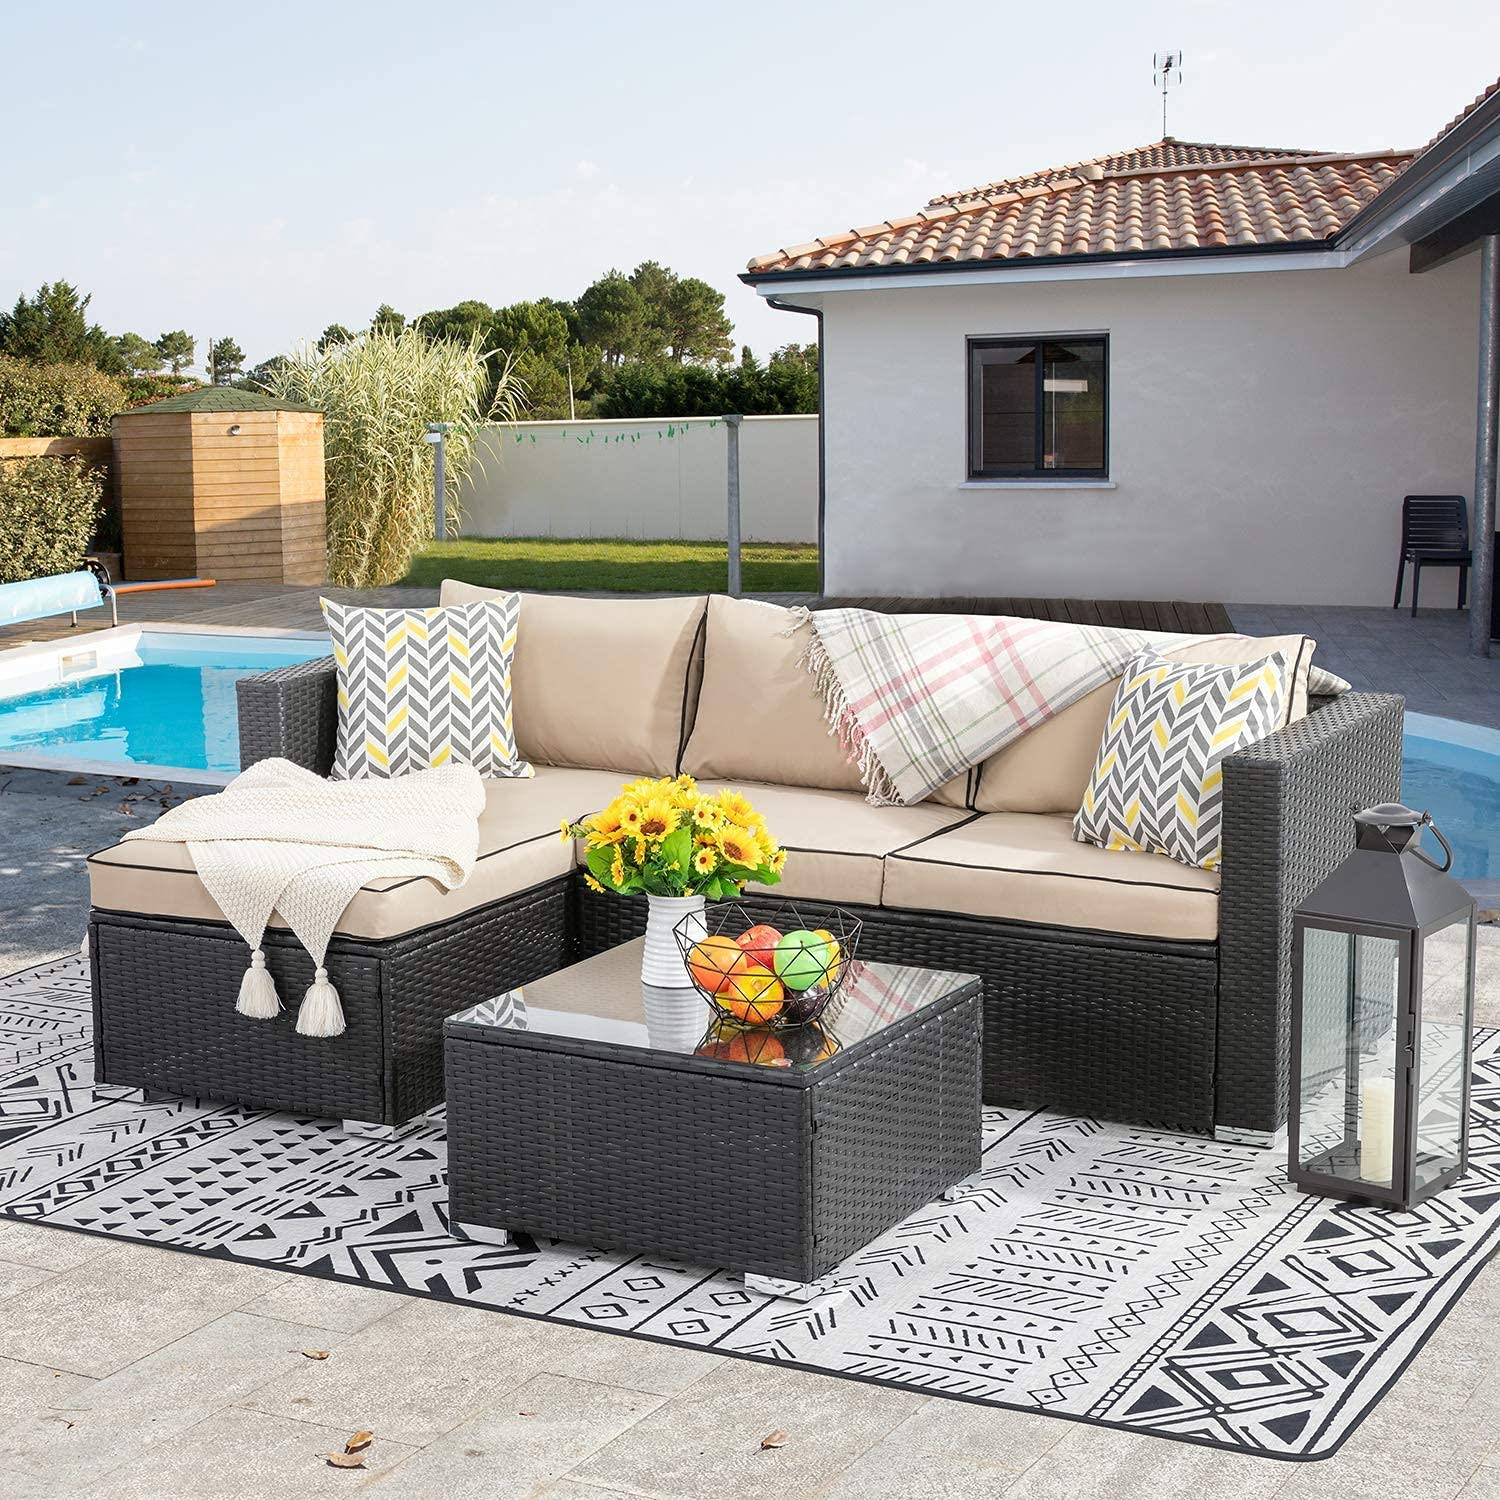 Walsunny 3 Piece 5 ☆ popular Outdoor Furniture Sectional with Sofa Cheap mail order sales Set Patio